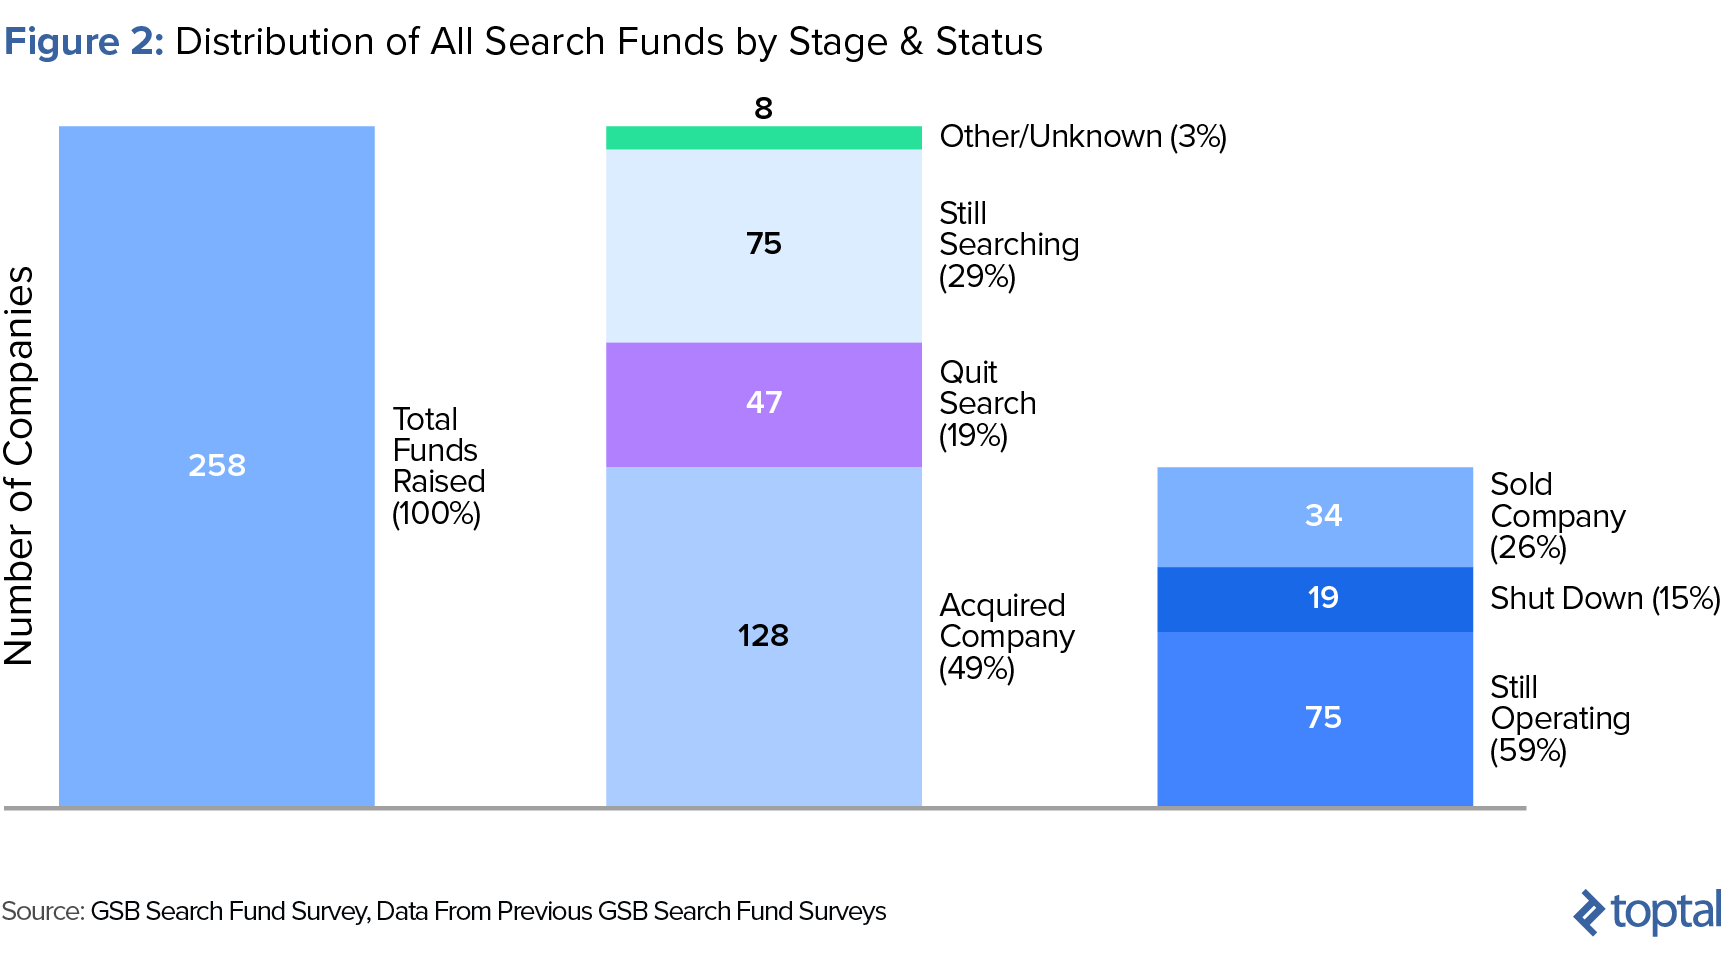 Figure 2: Distribution of All Search Funds by Stage & Status